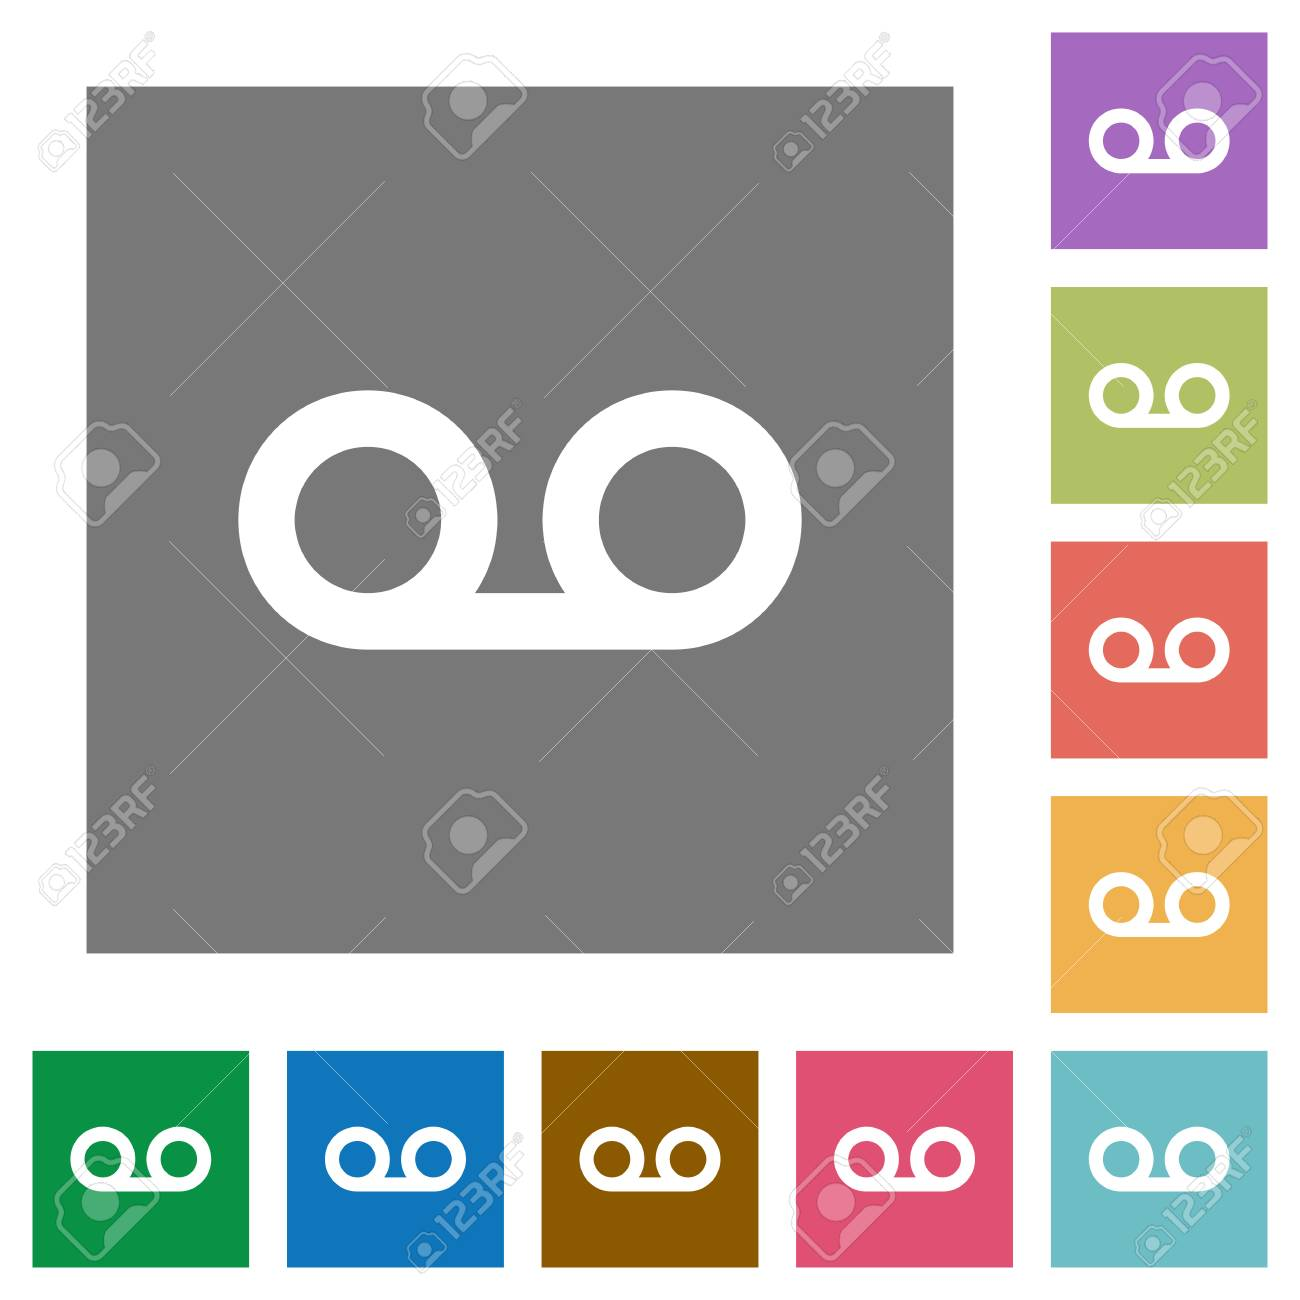 voicemail flat icons on simple color square backgrounds royalty free